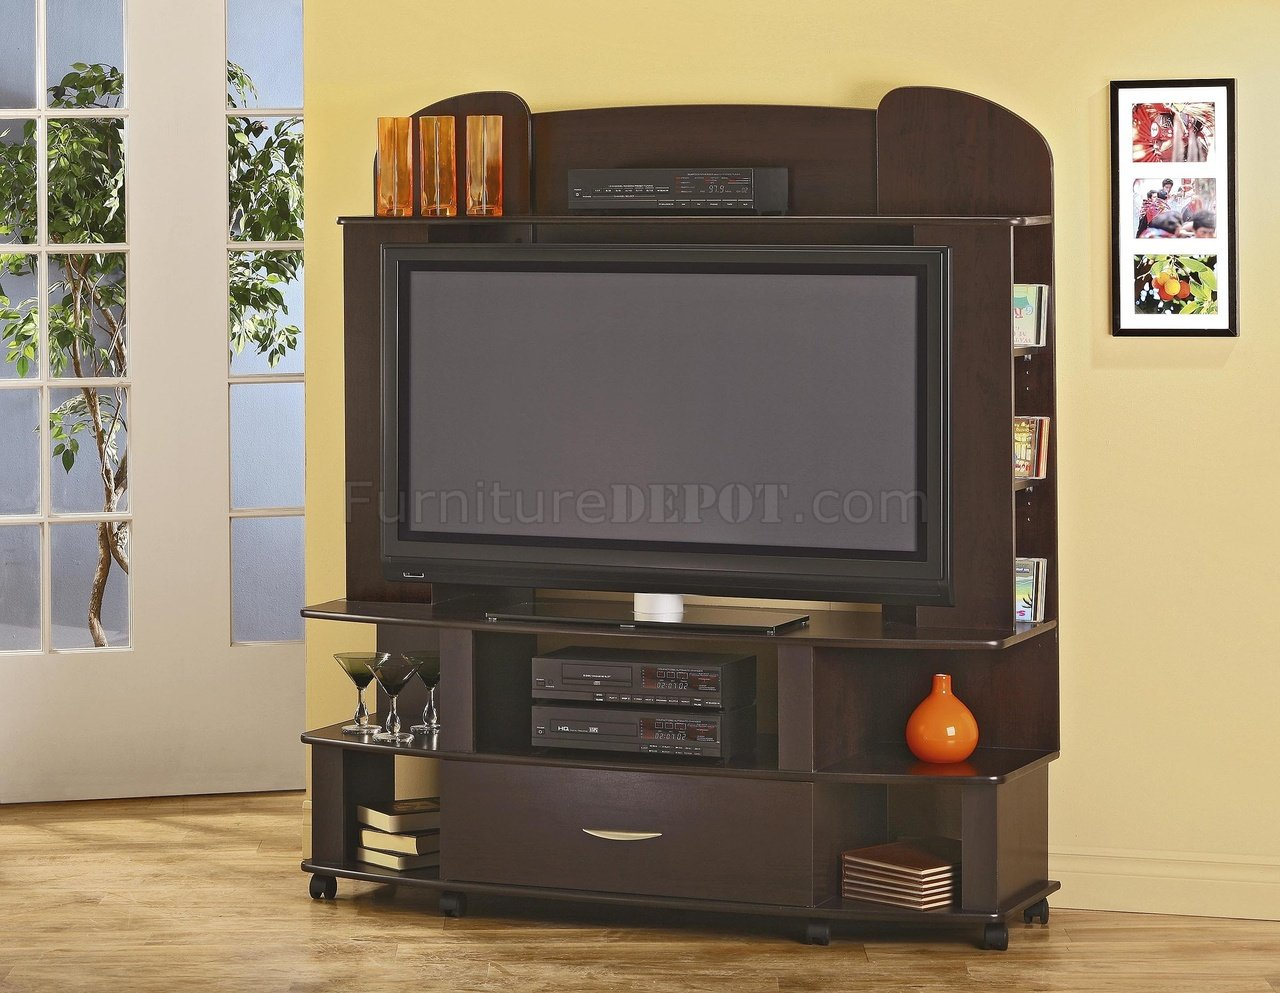 Fullsize Of Modern Entertainment Center